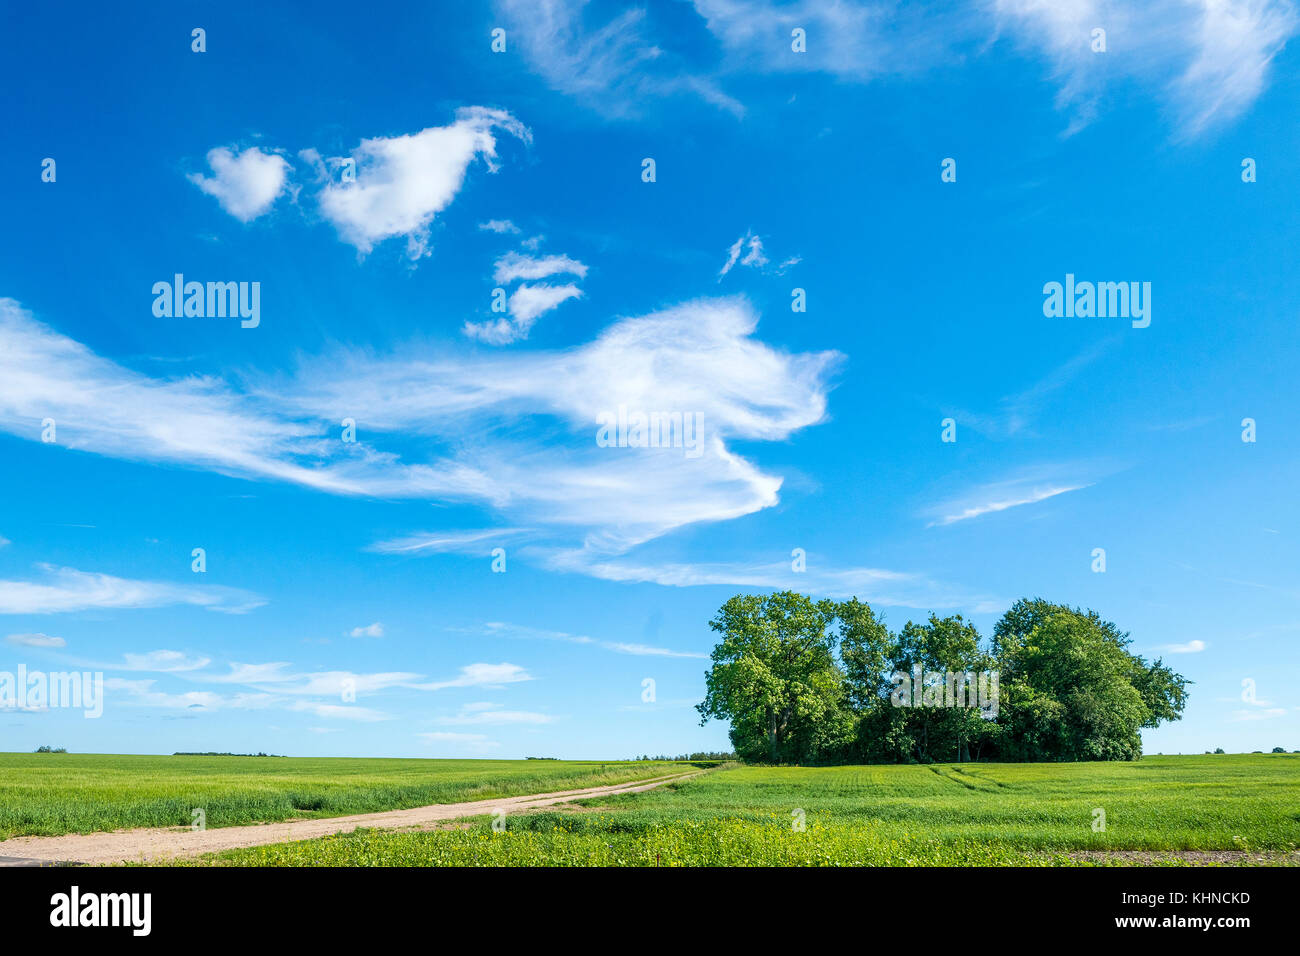 Summer landscape with magical cloud imagination figures on a blue sky over green field - Stock Image